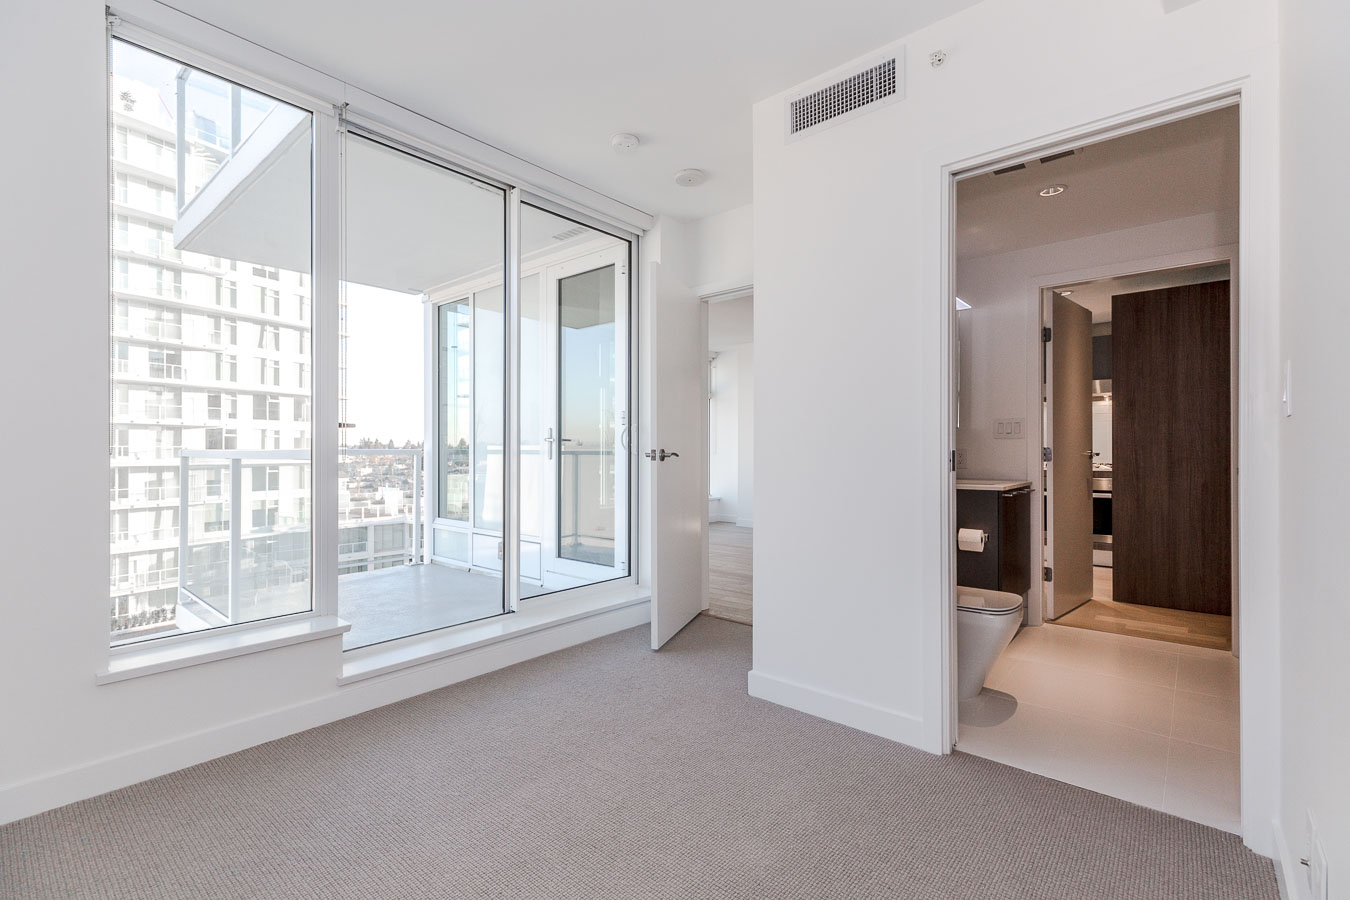 Interior of luxury Vancouver condo rental with a view.